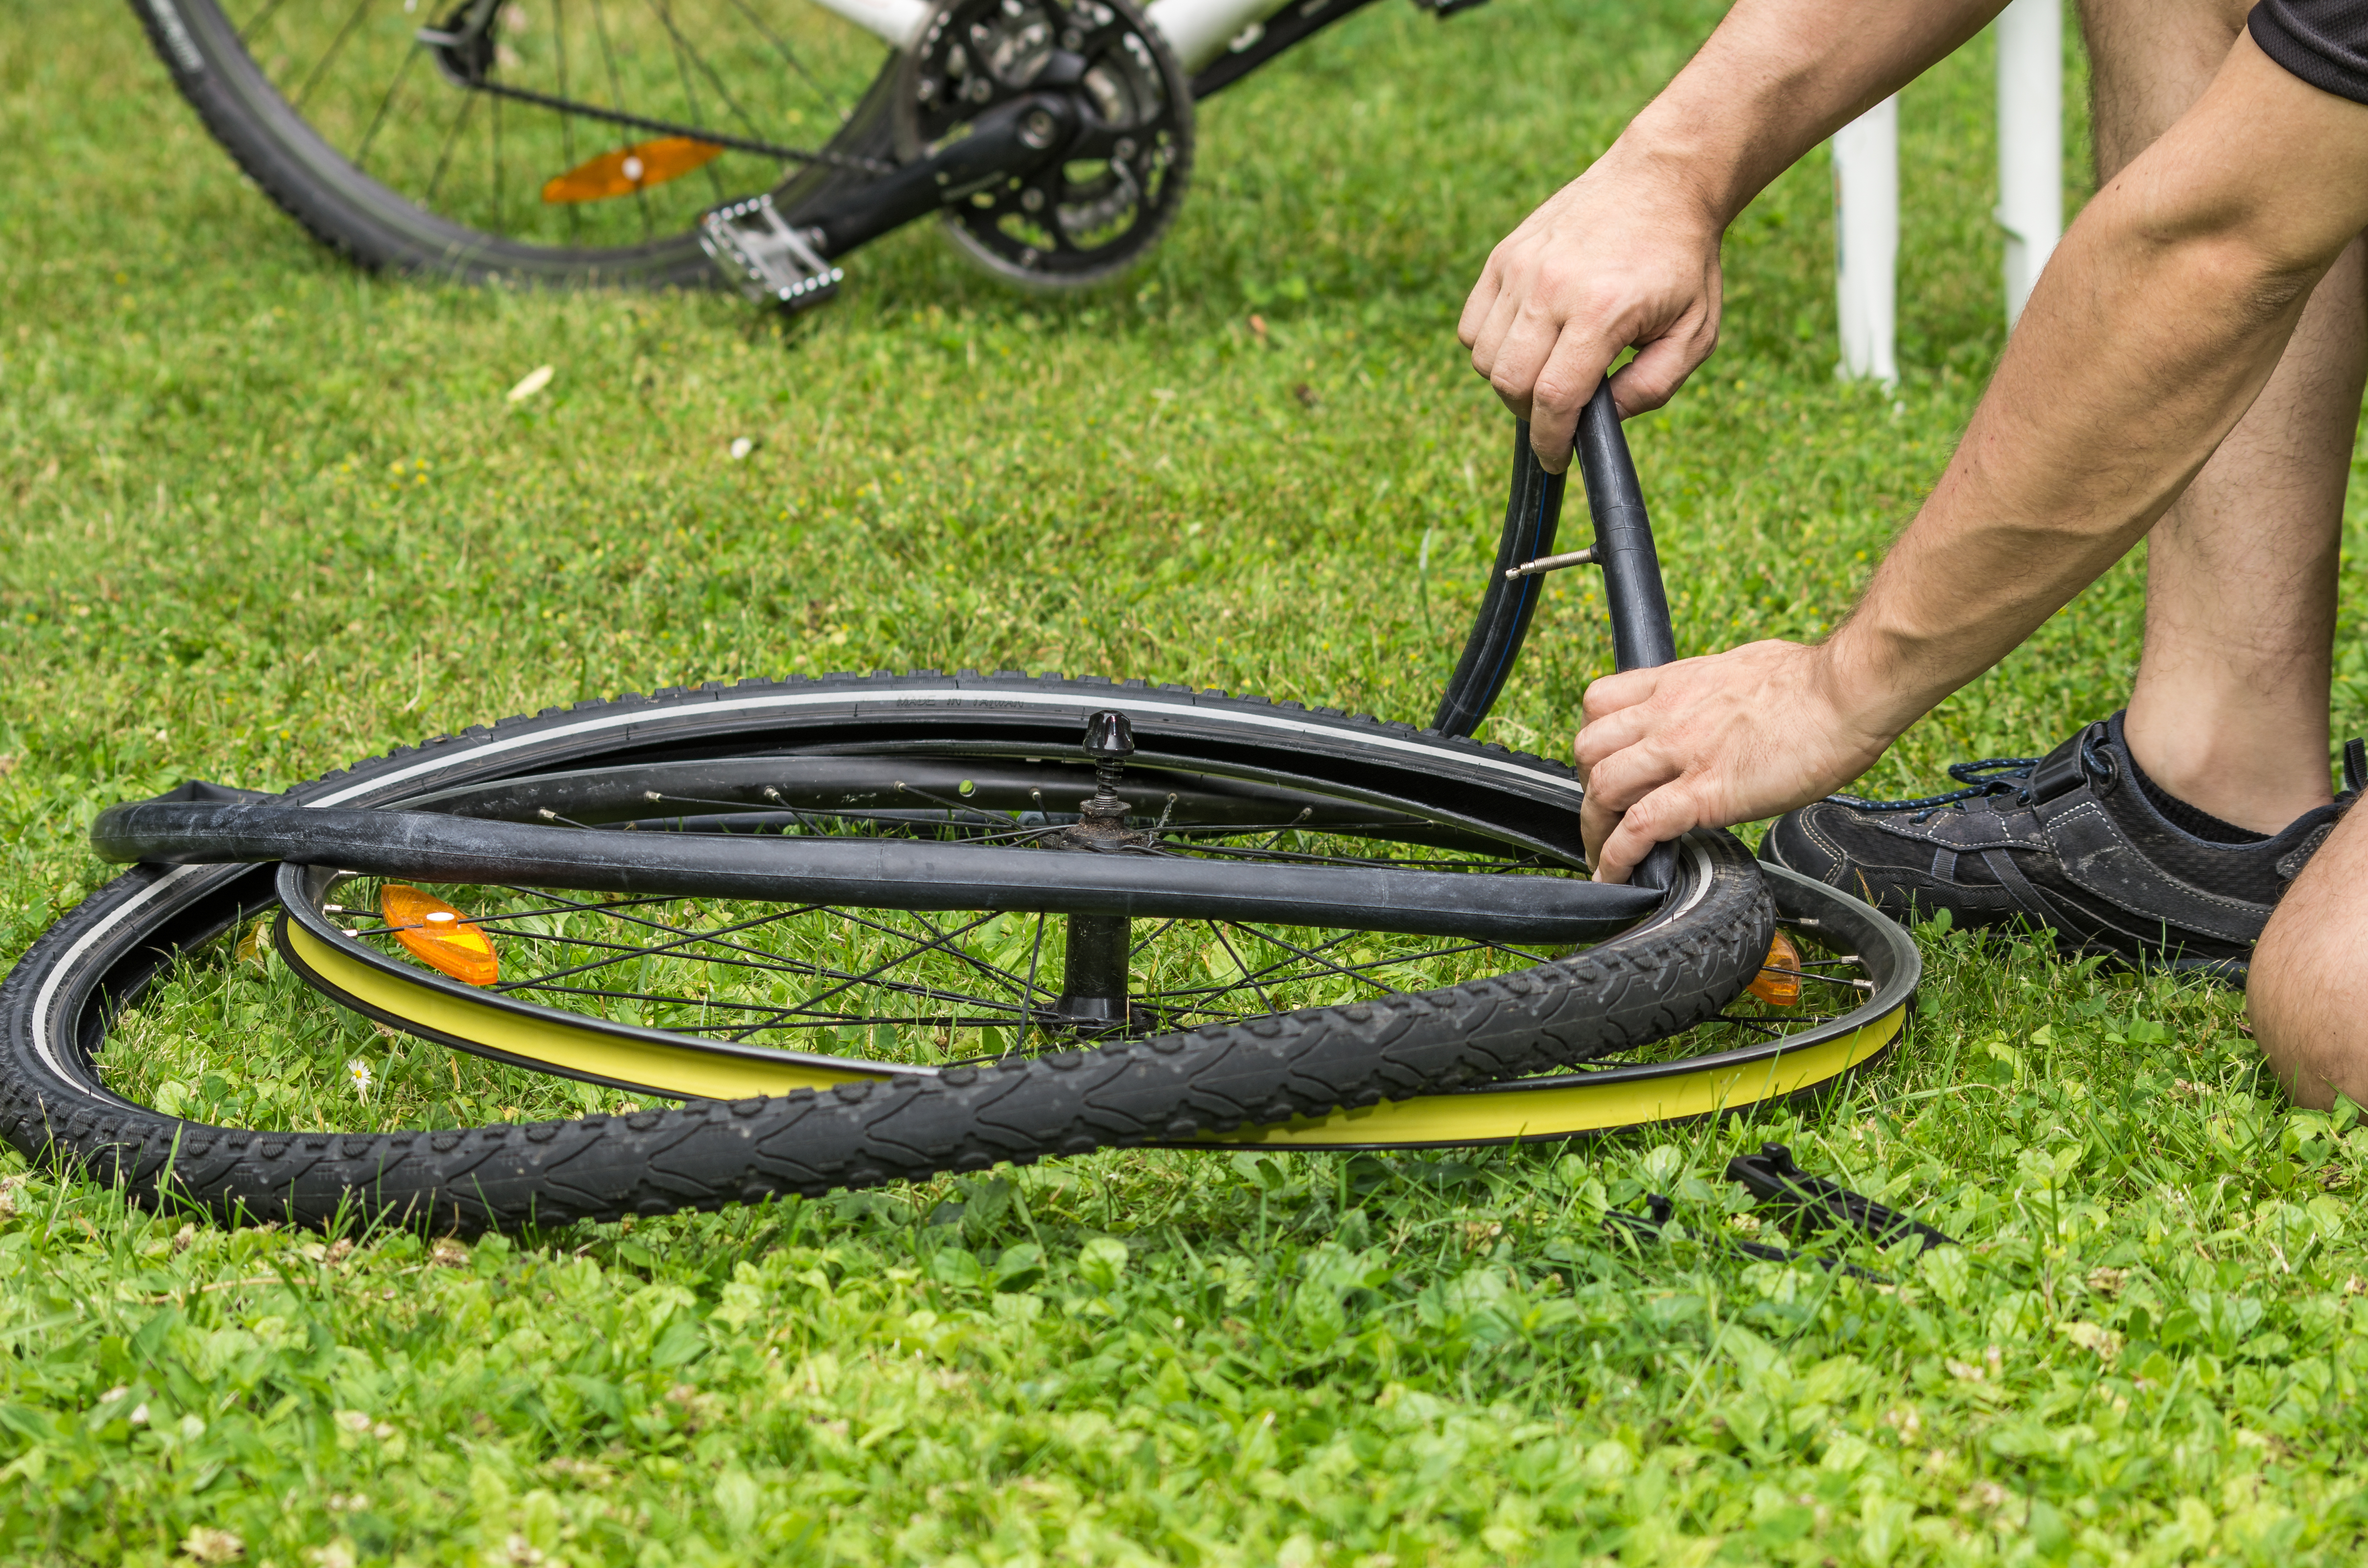 keep your bike eco friendly by repairing punctures rather than replacing tyres